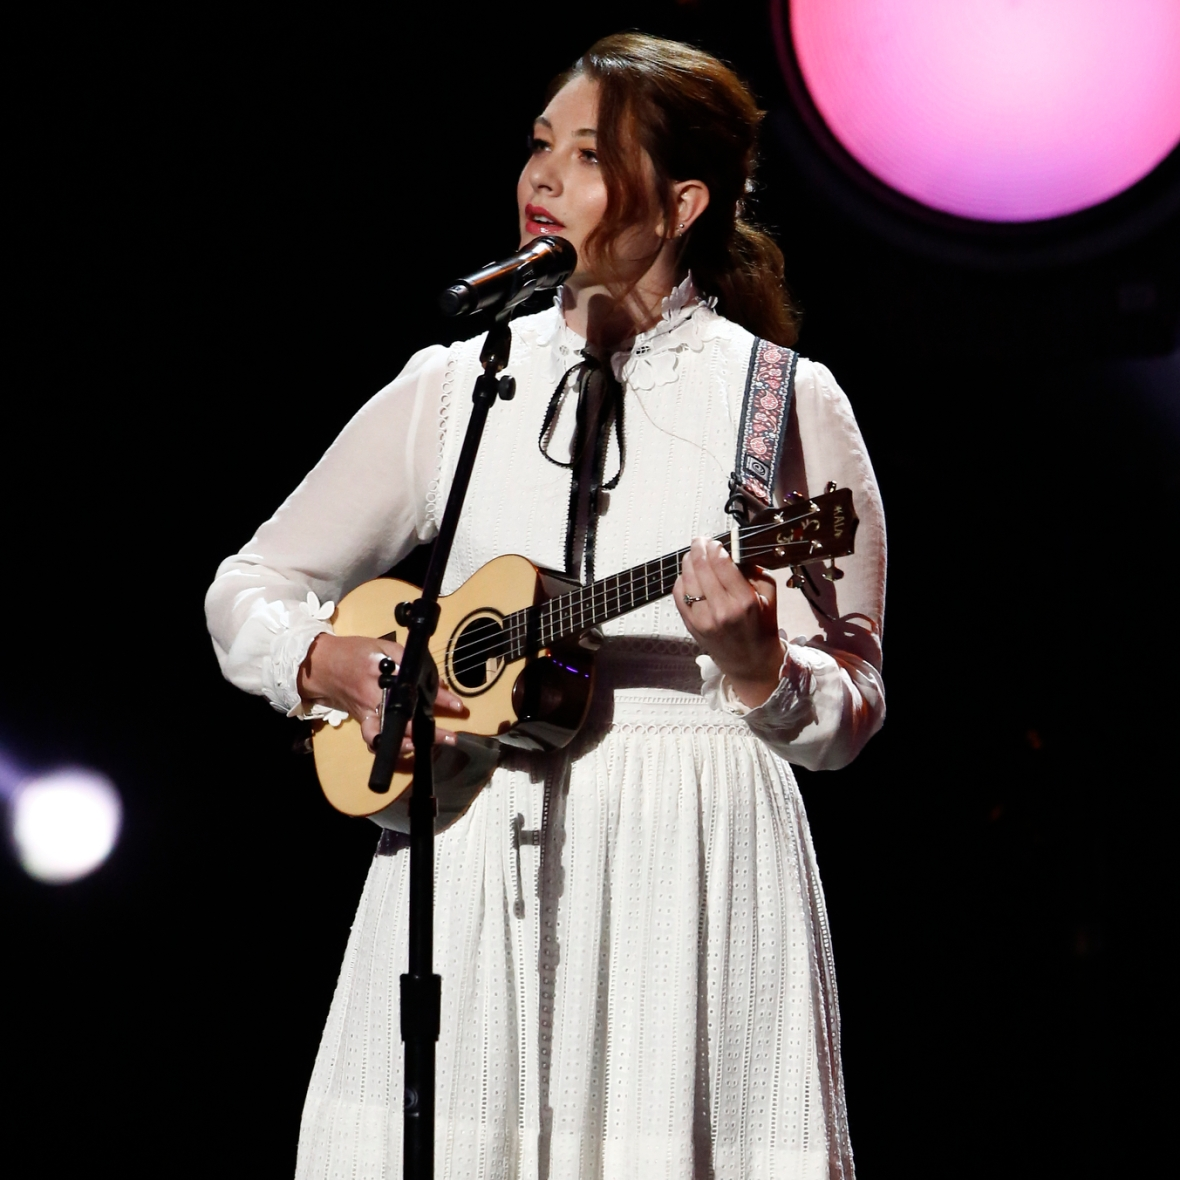 mandy harvey getty images